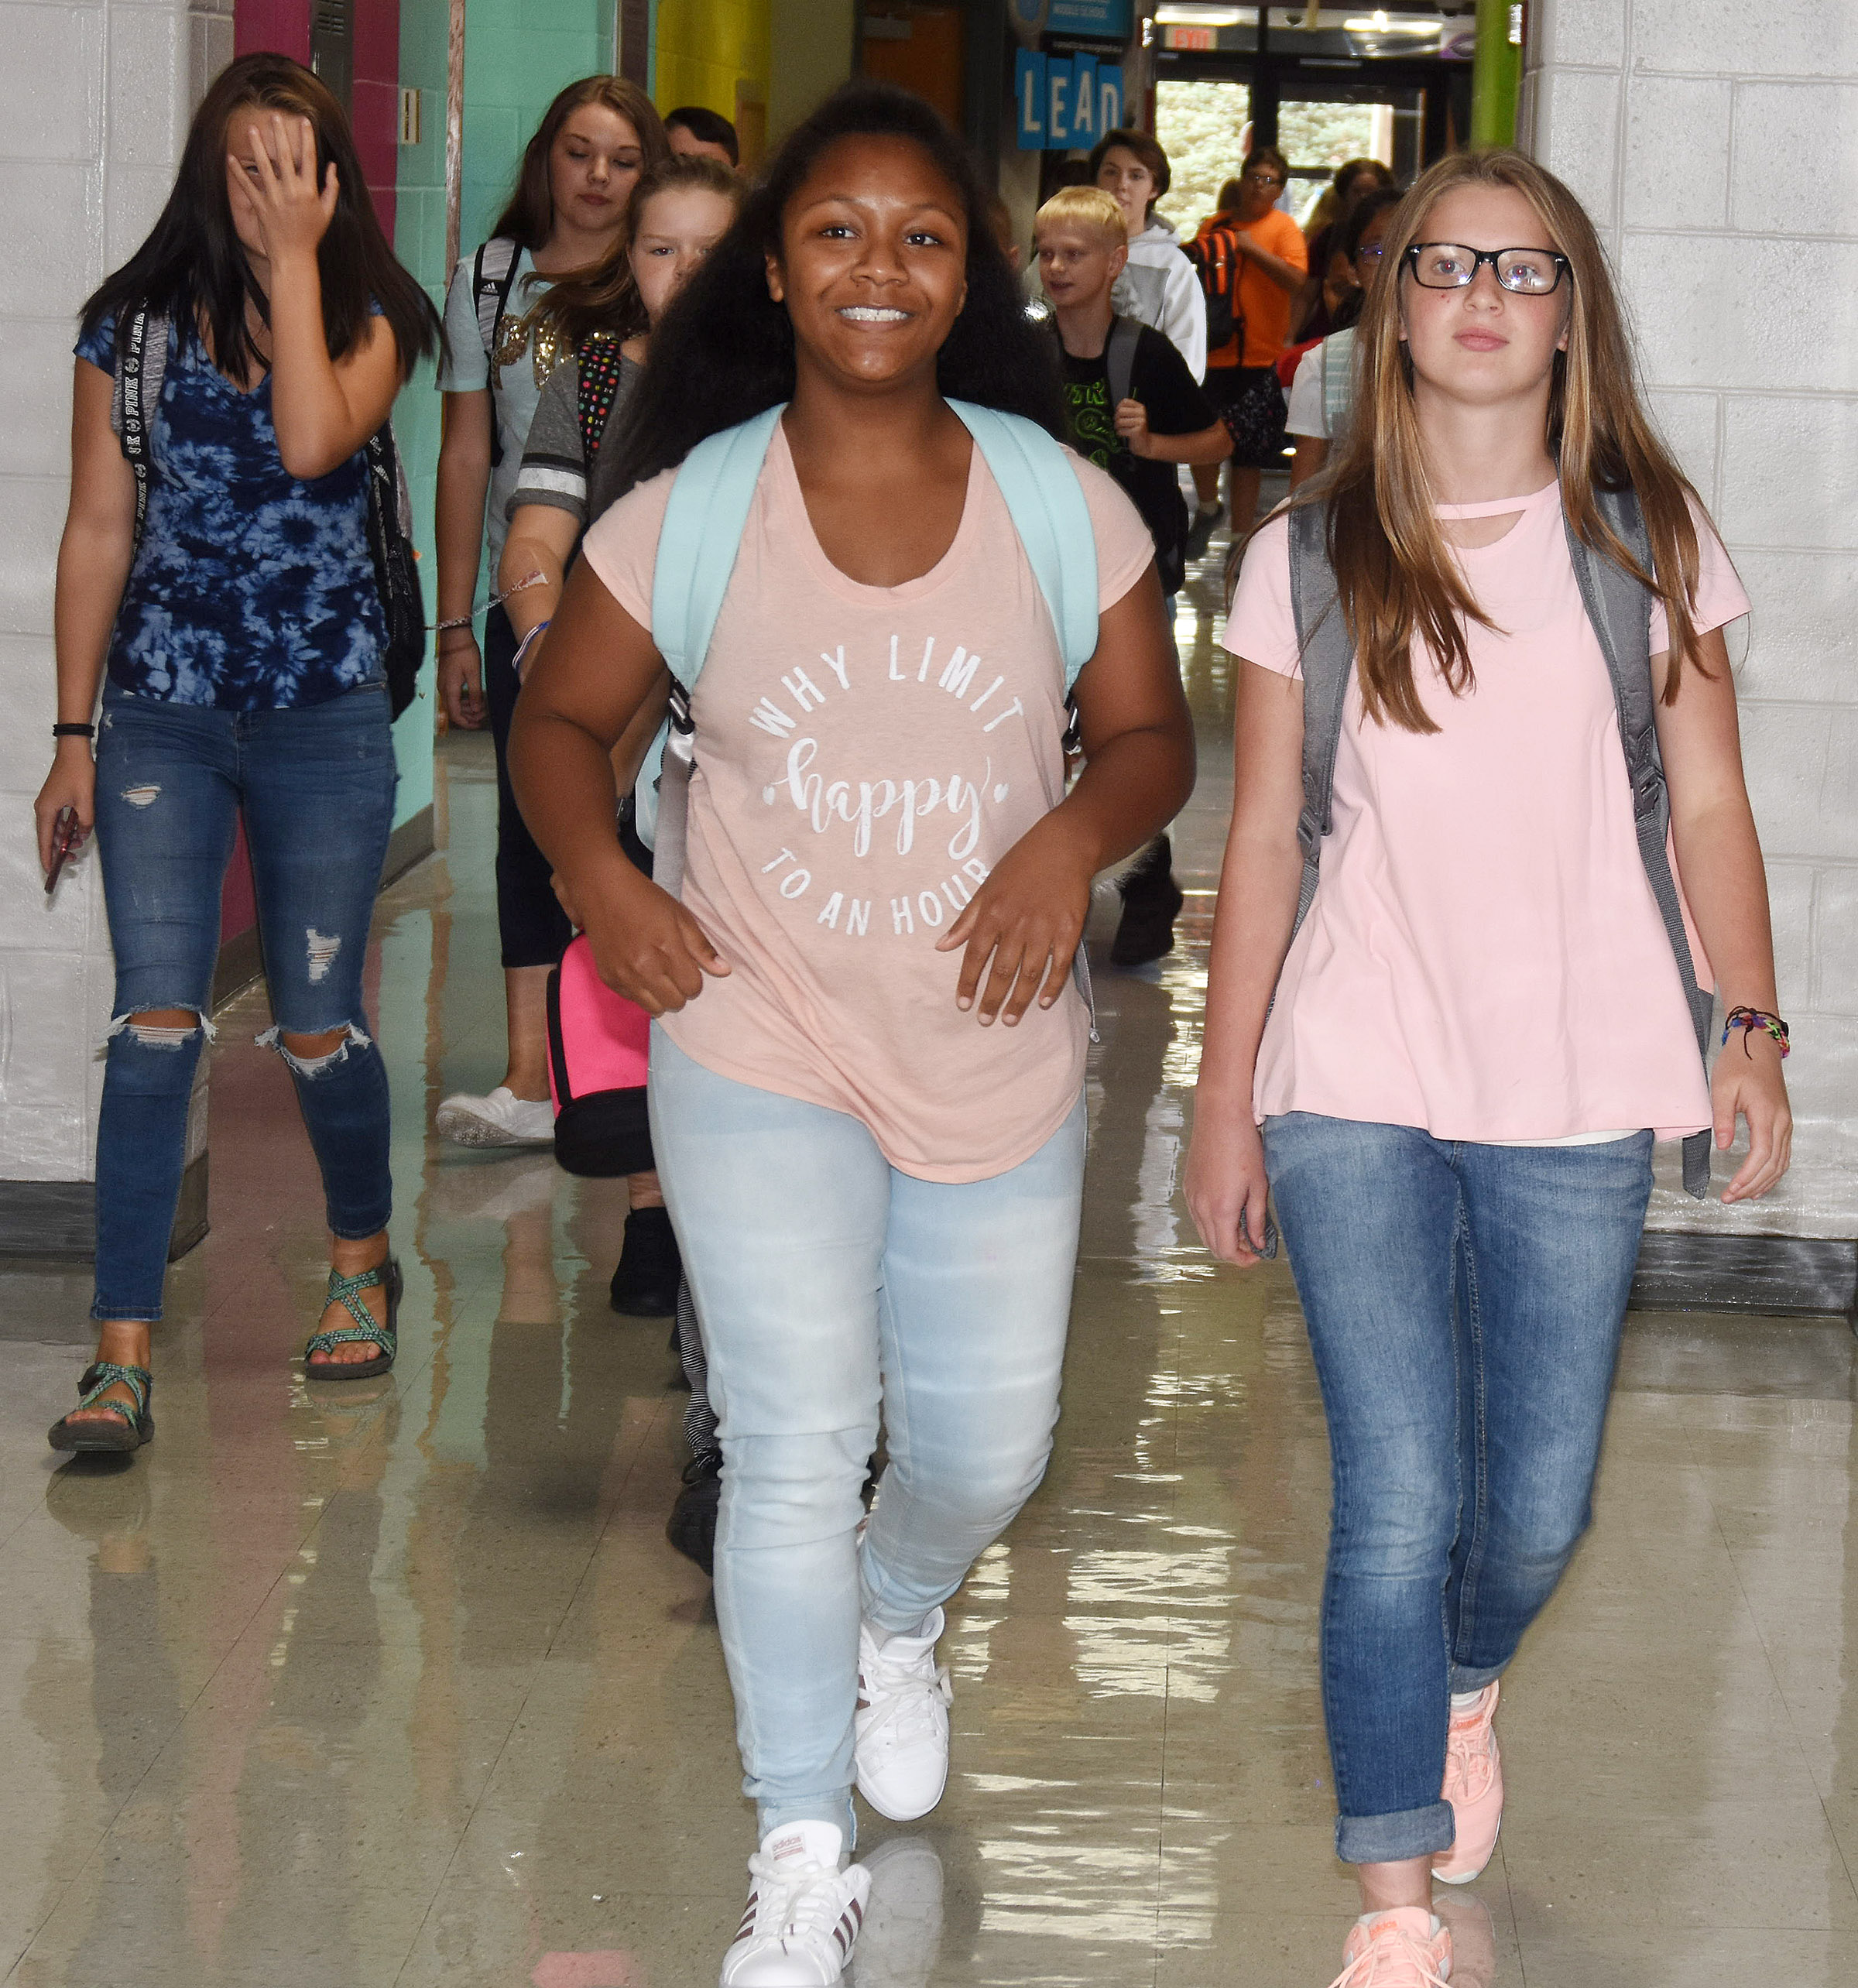 Campbellsville Middle School seventh-graders Camilla Taylor, at left, and Hannah Singleton walk to the buses at the end of the day.